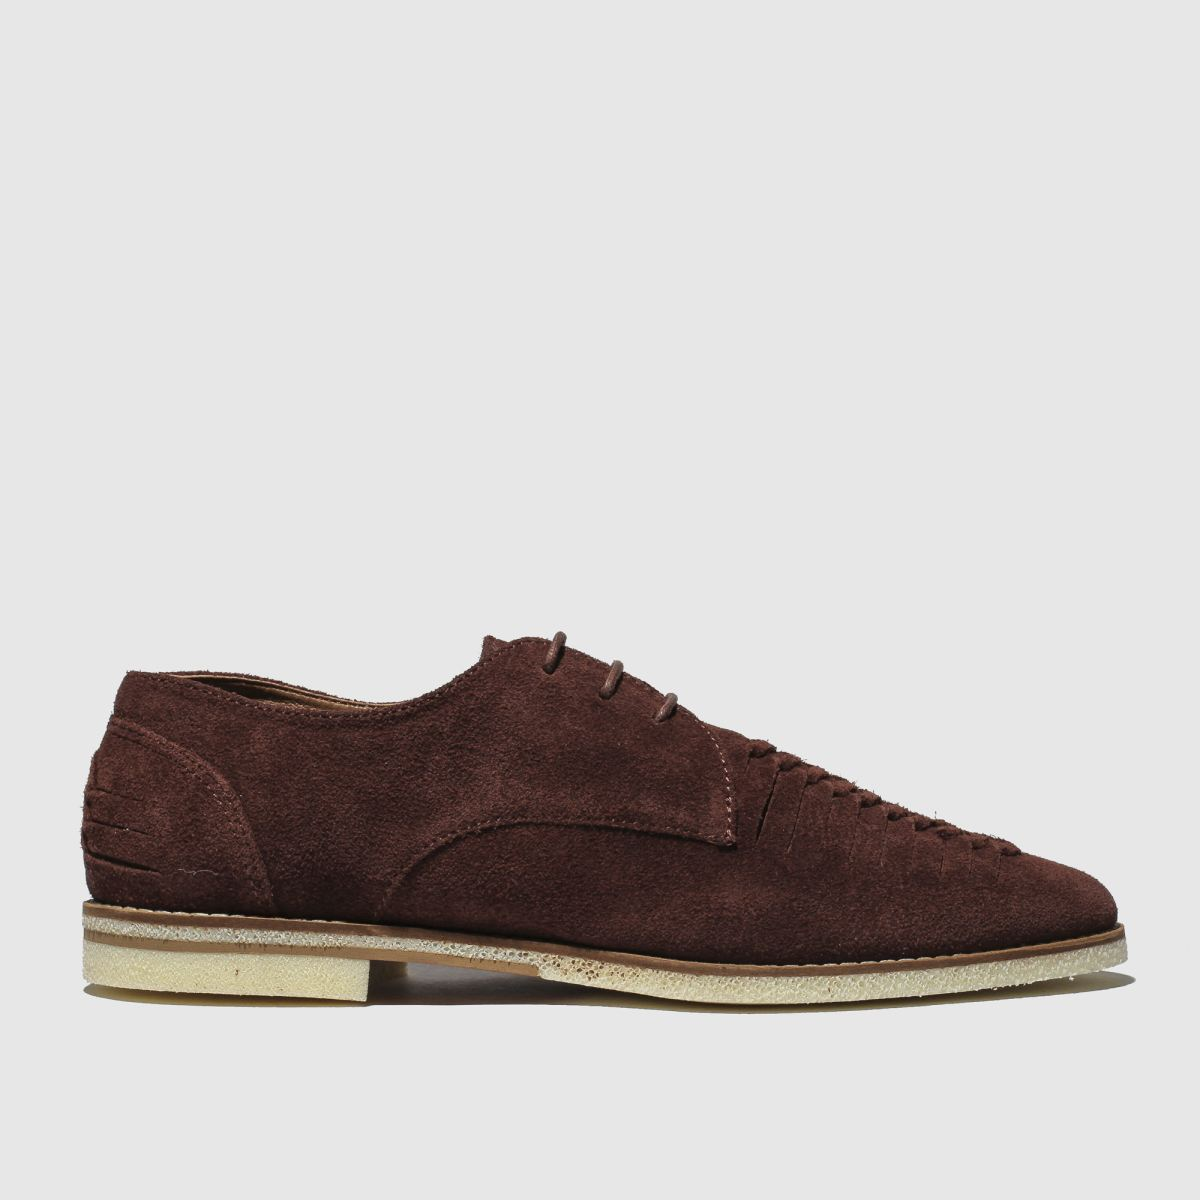 H By Hudson Tan Chatra Shoes